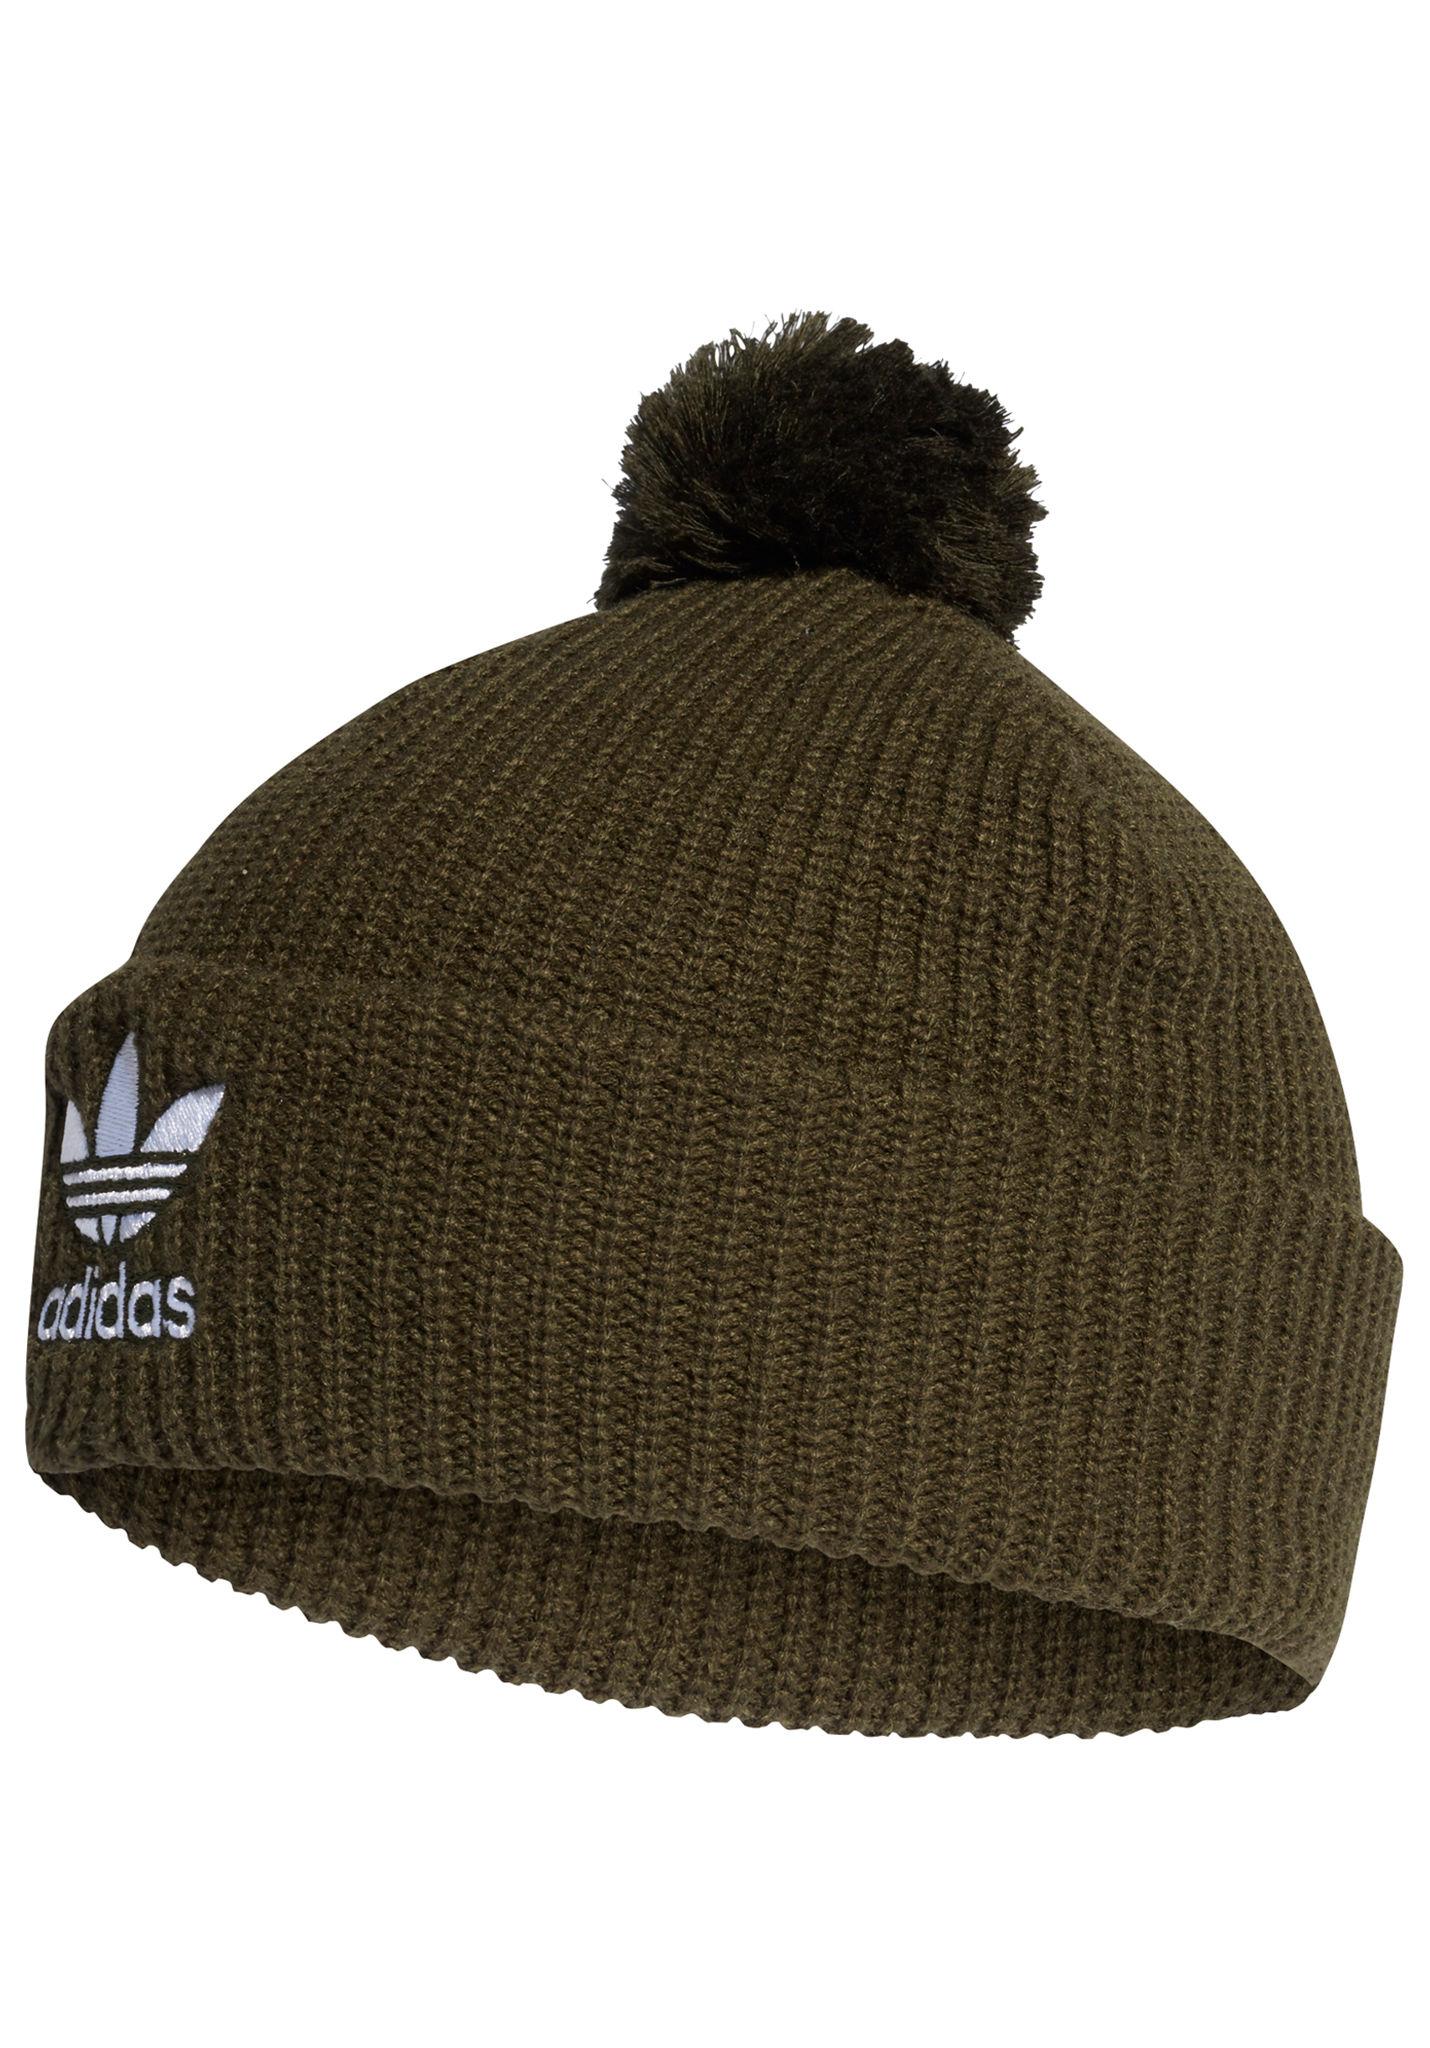 ADIDAS ORIGINALS Pom Pom - Cappello per Donna - Verde - Planet Sports ed1ccac1b37d